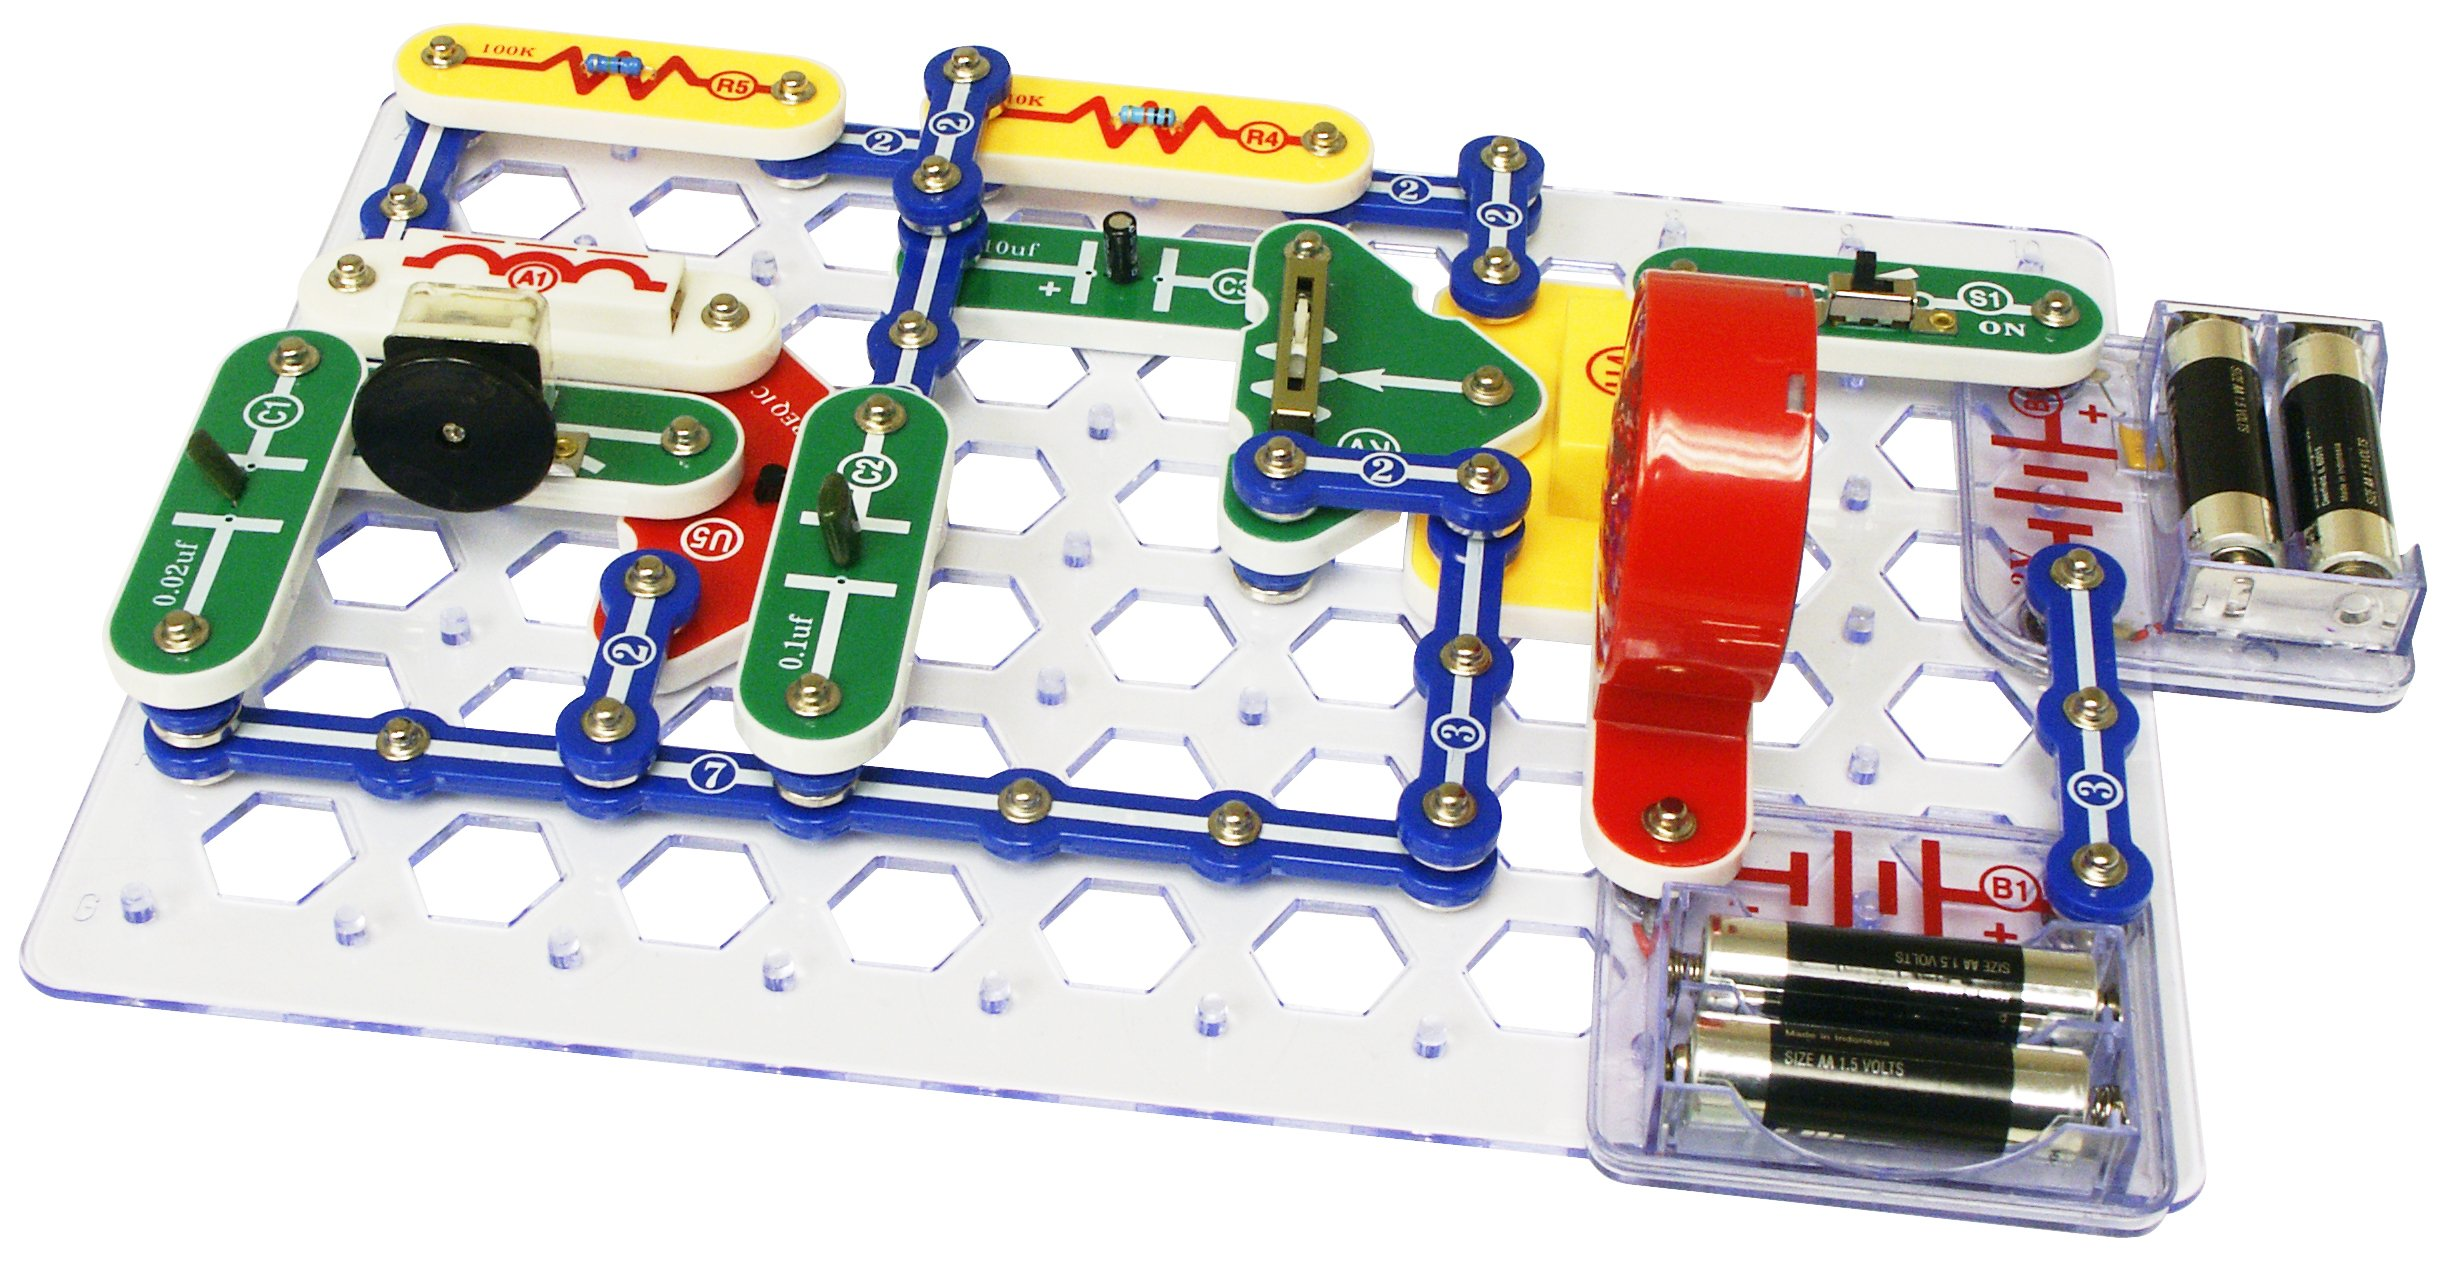 Snap Circuits Classic SC-300 Electronics Exploration Kit | Over 300 STEM Projects | 4-Color Project Manual | 60 Snap Modules | Unlimited Fun by Snap Circuits (Image #3)